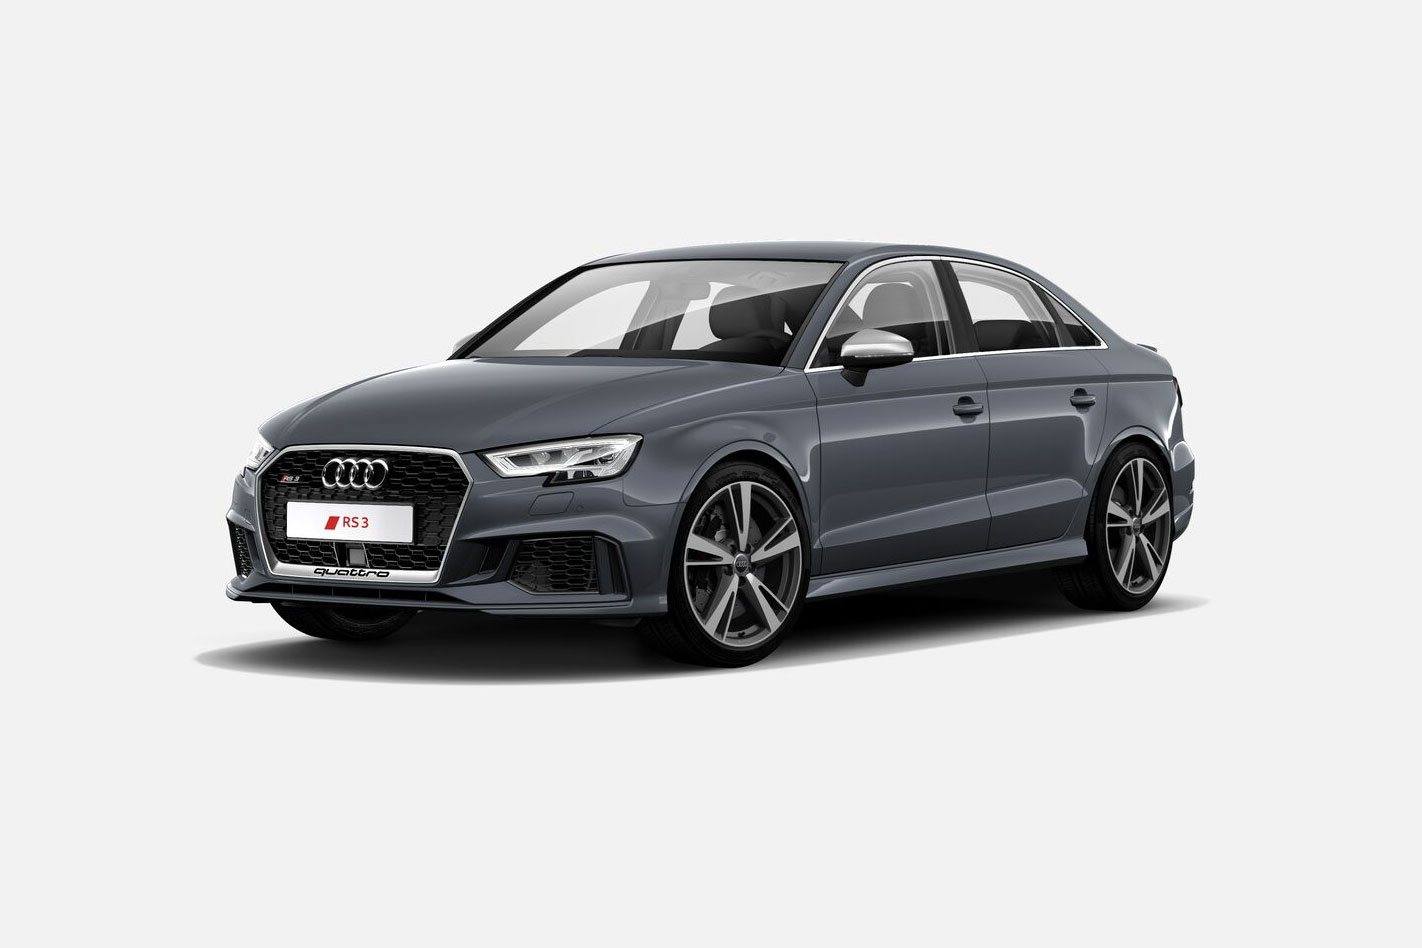 Audi Rs3 Reviews Prices Specs Videos News